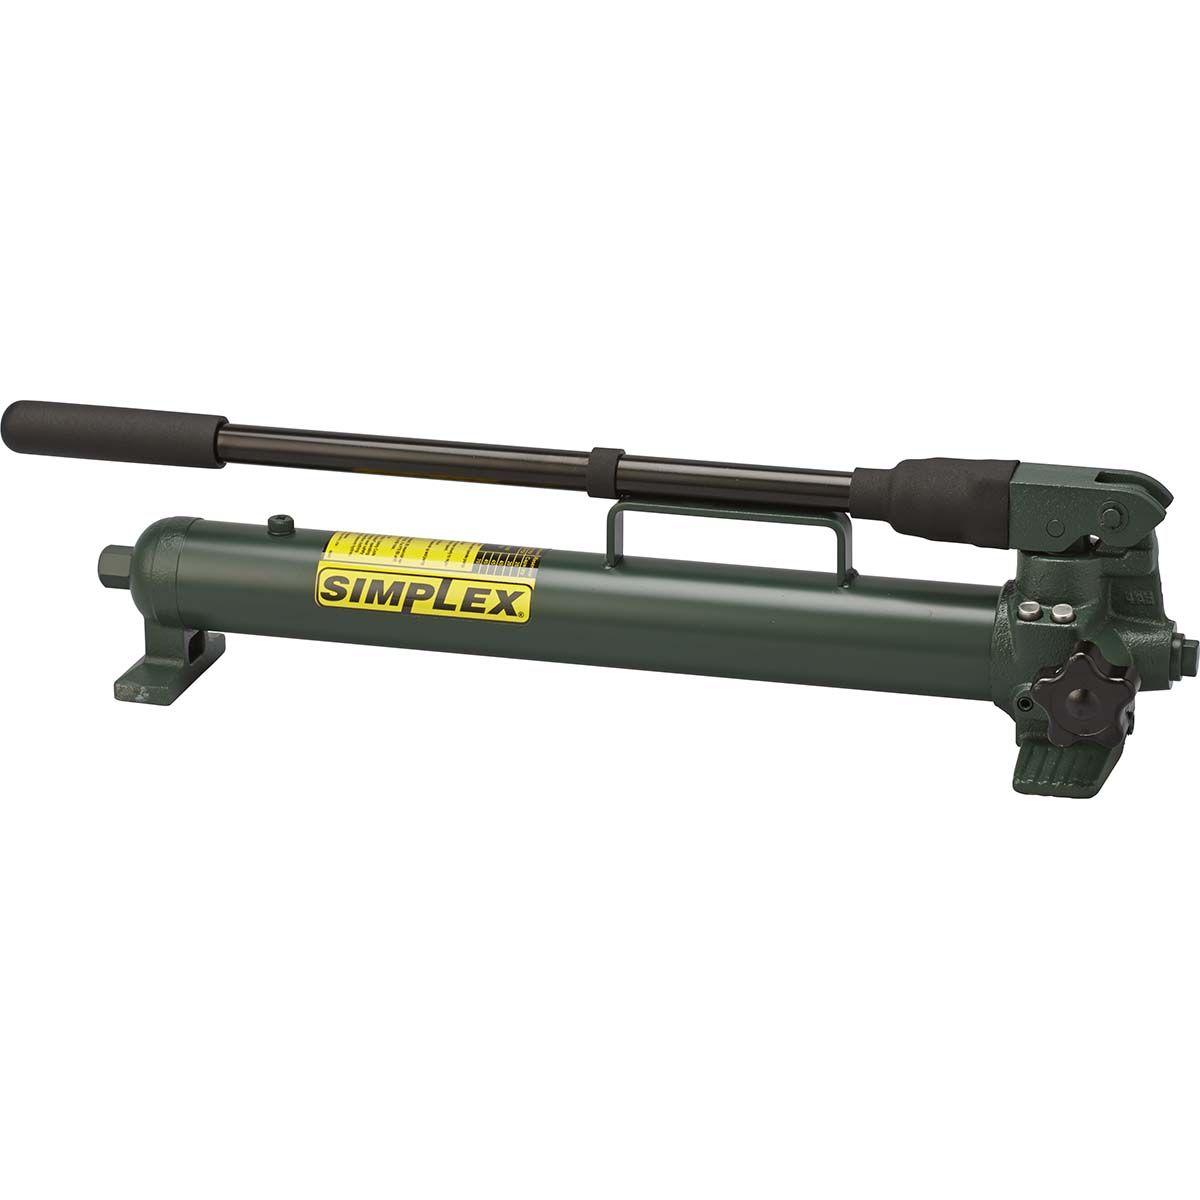 2 Stg 200/10K Psi 45Cu.In. Steel Hand Pump